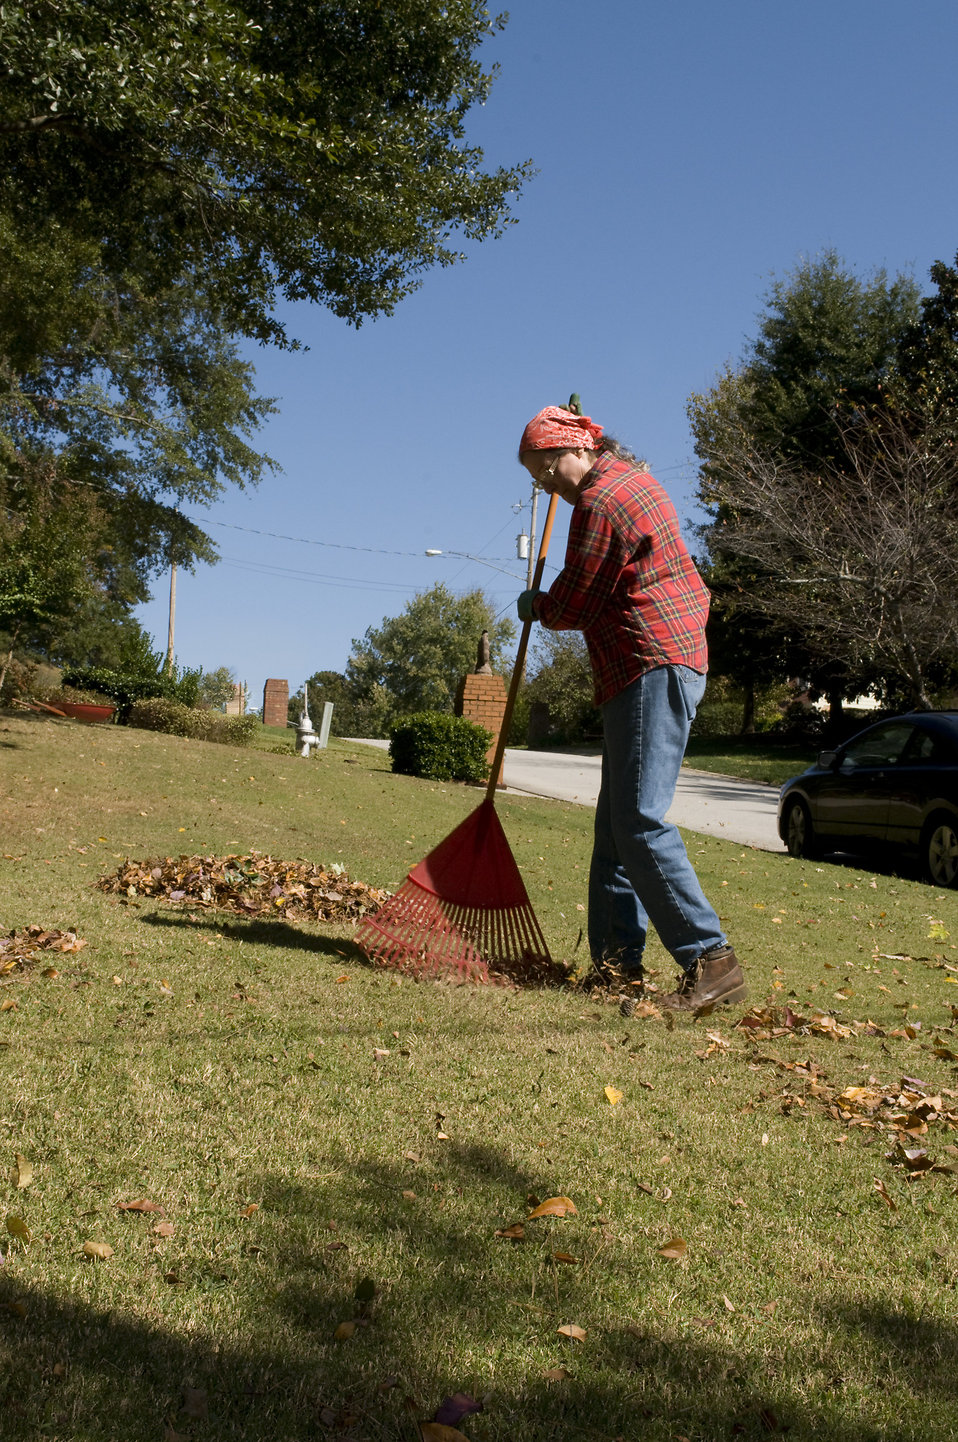 A woman raking leaves on her lawn : Free Stock Photo